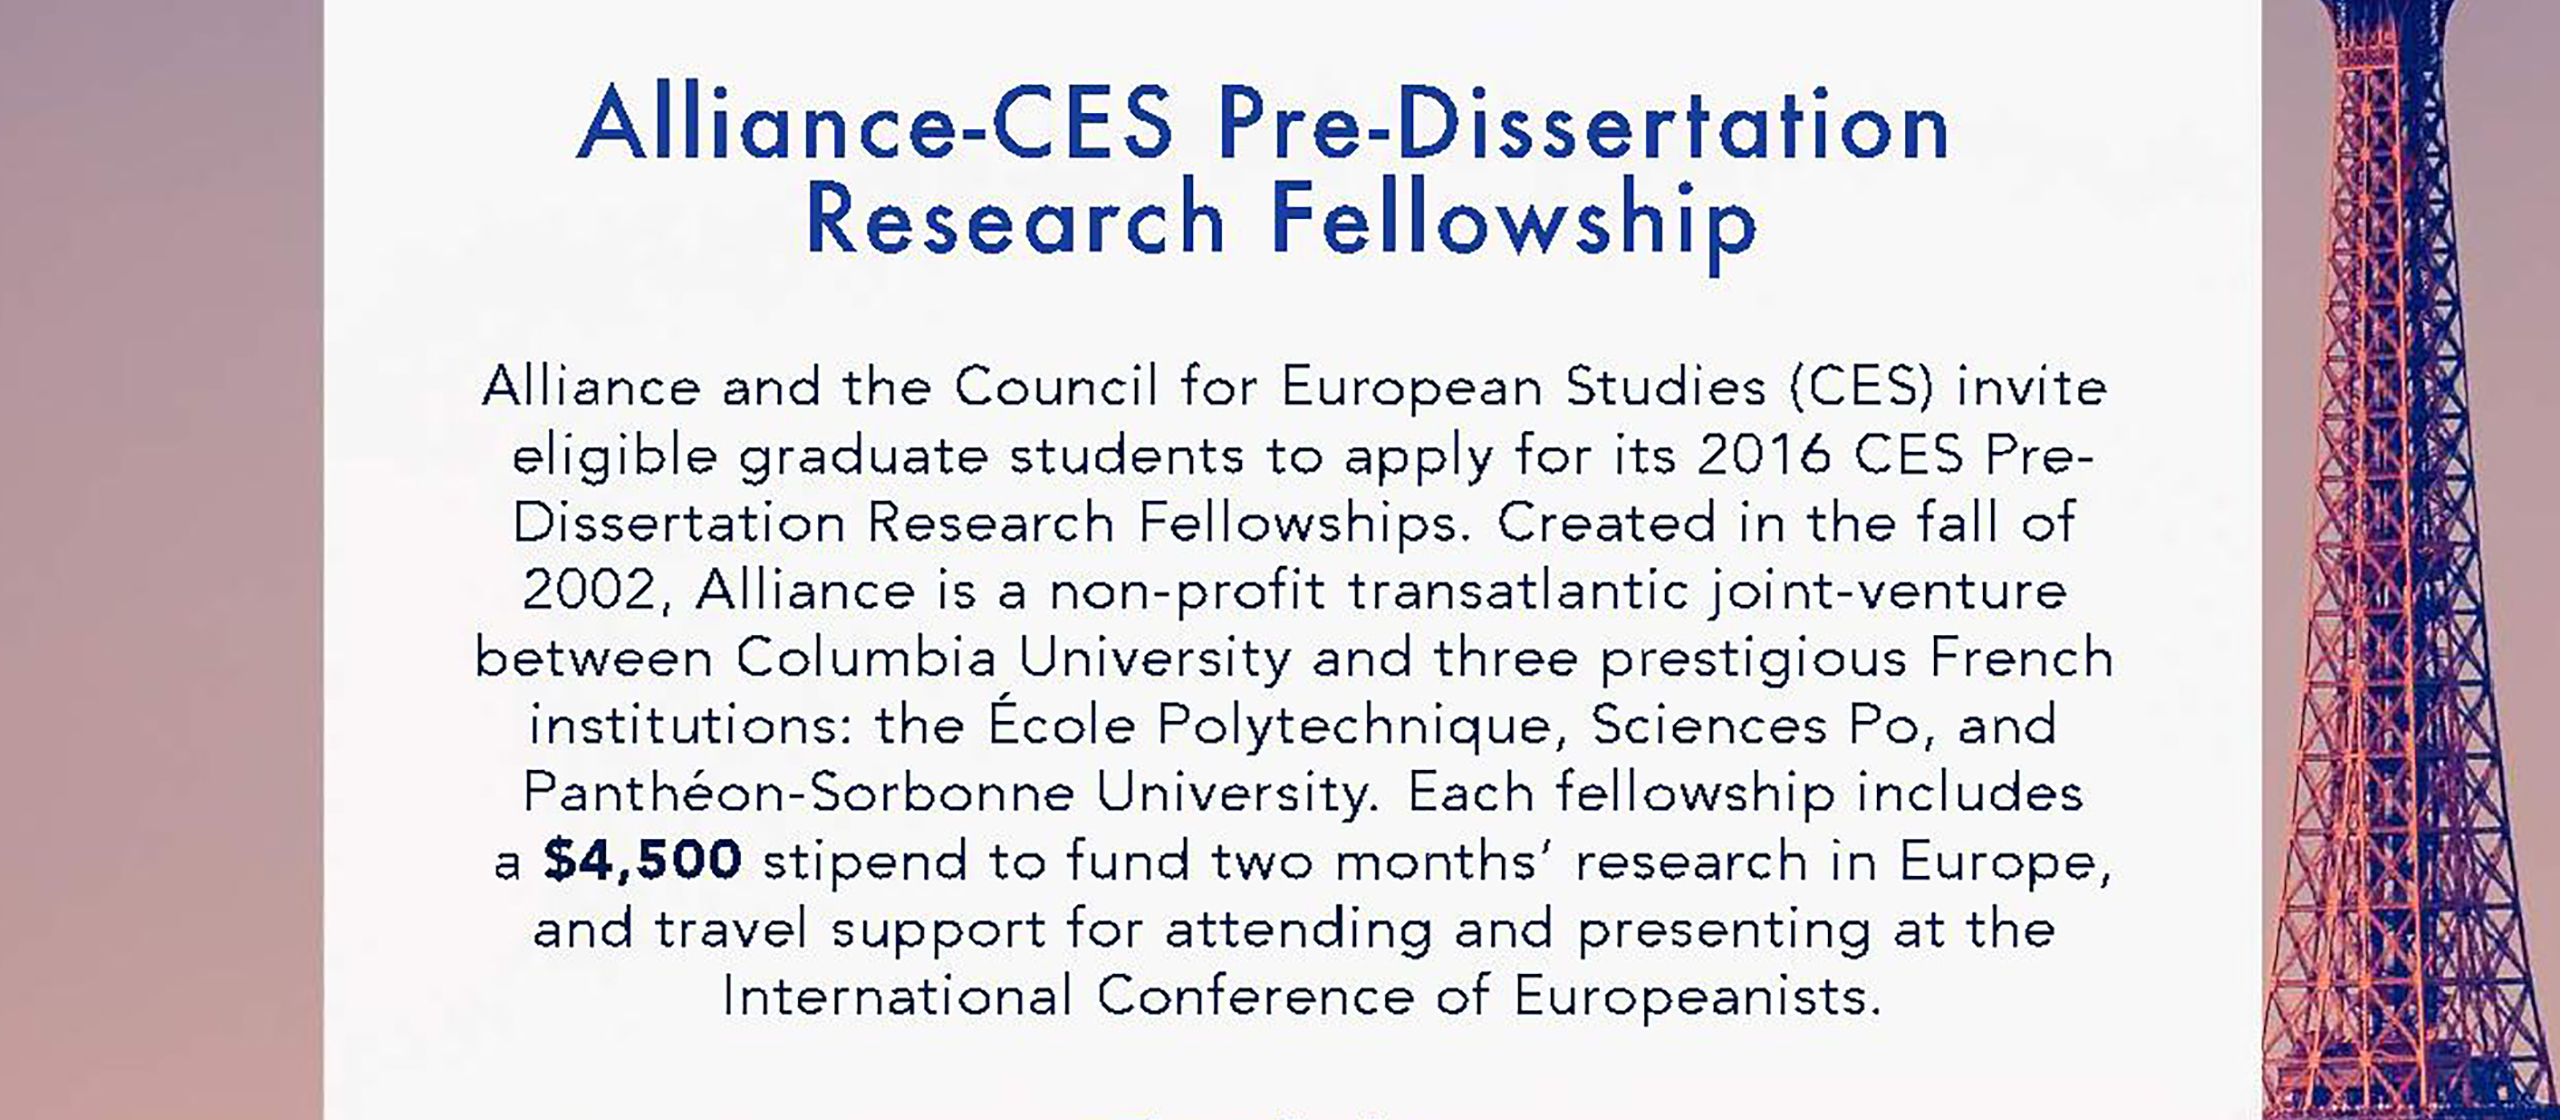 Ces pre dissertation research fellowships